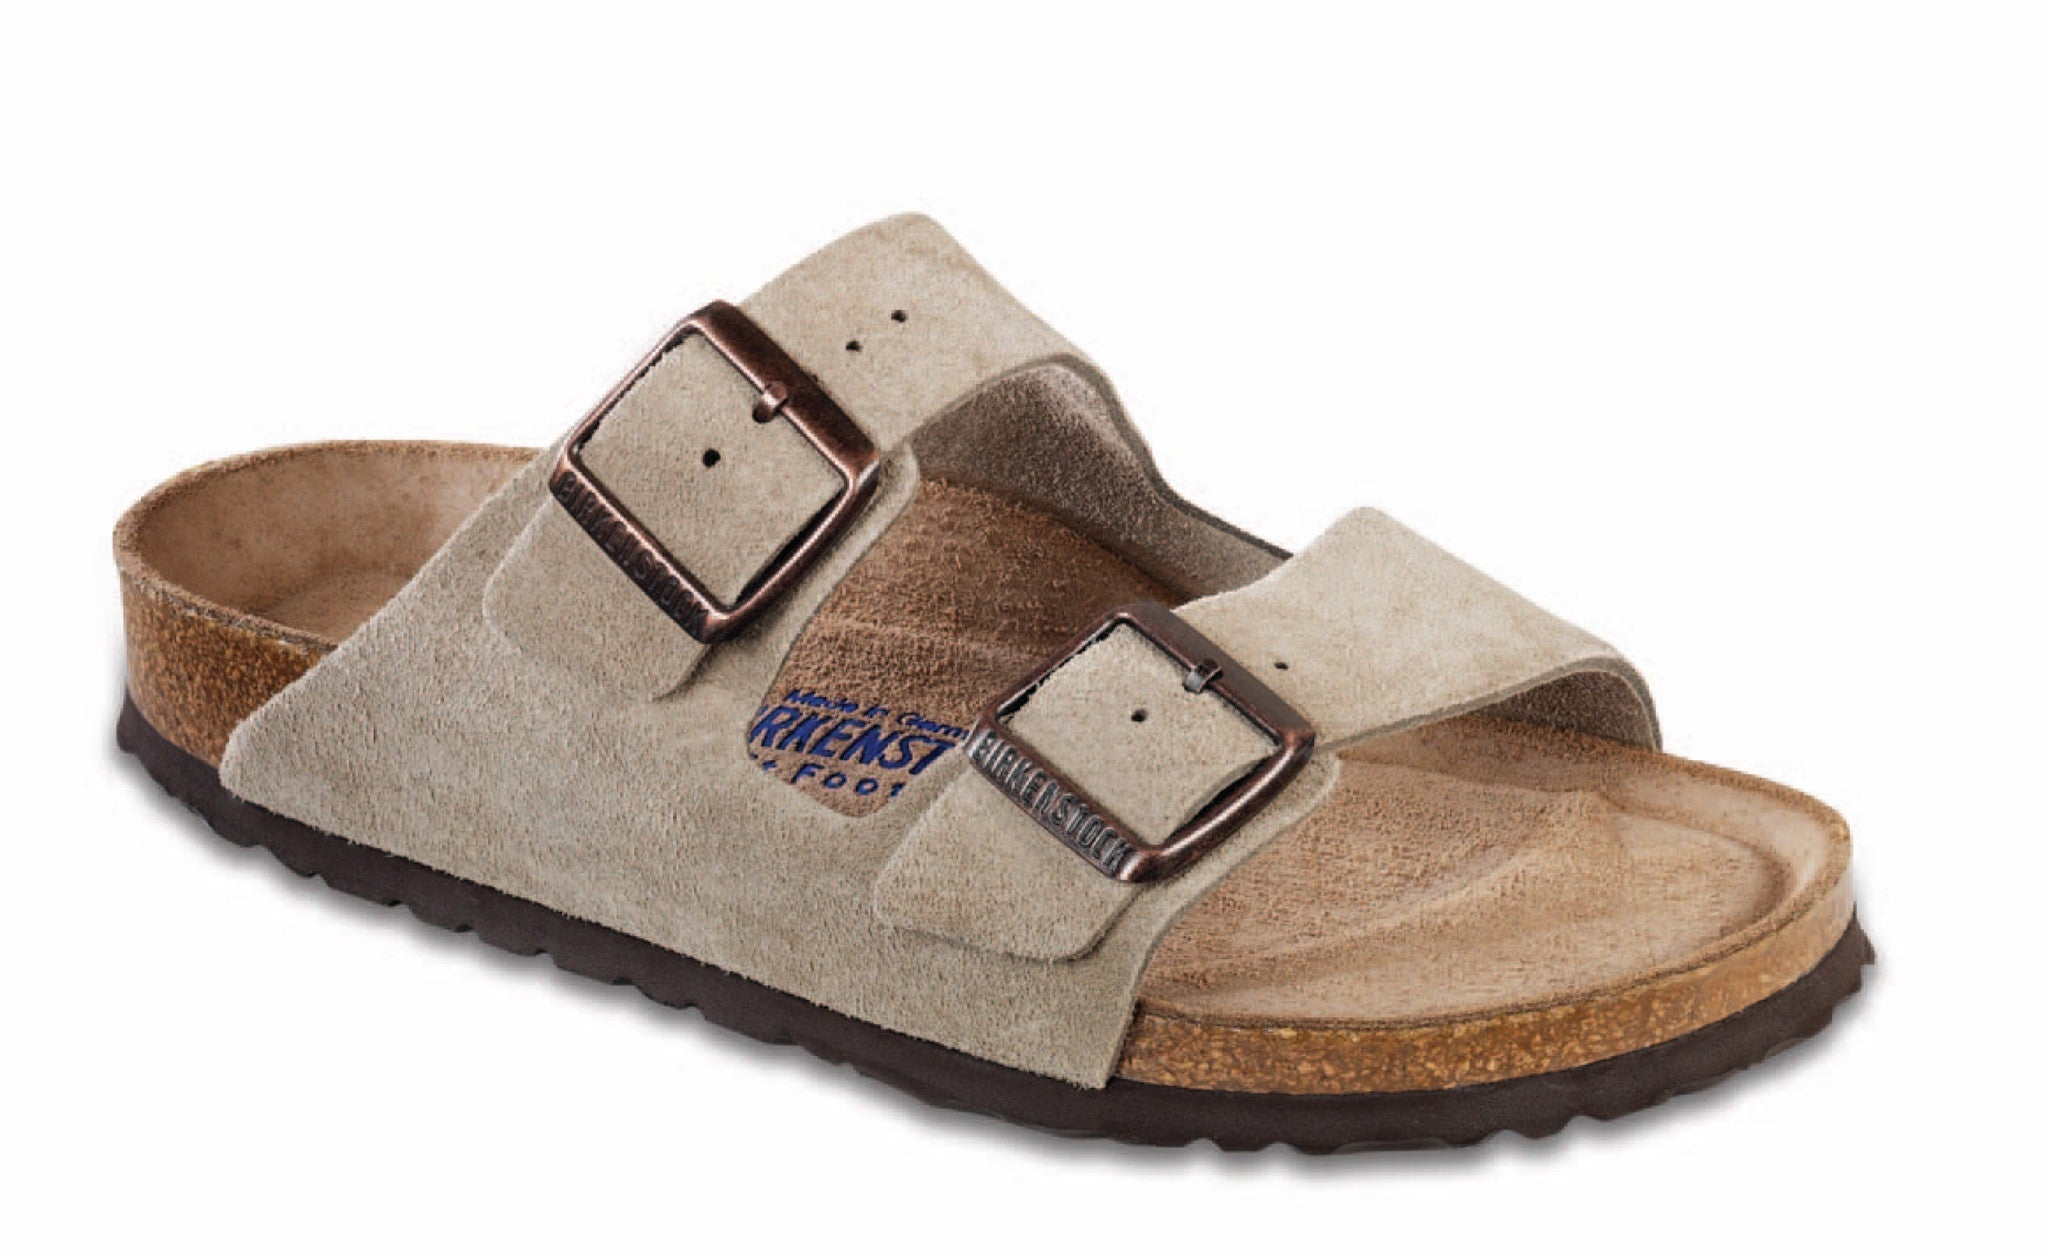 Birkenstock Women's Arizona Soft Footbed in Taupe Suede